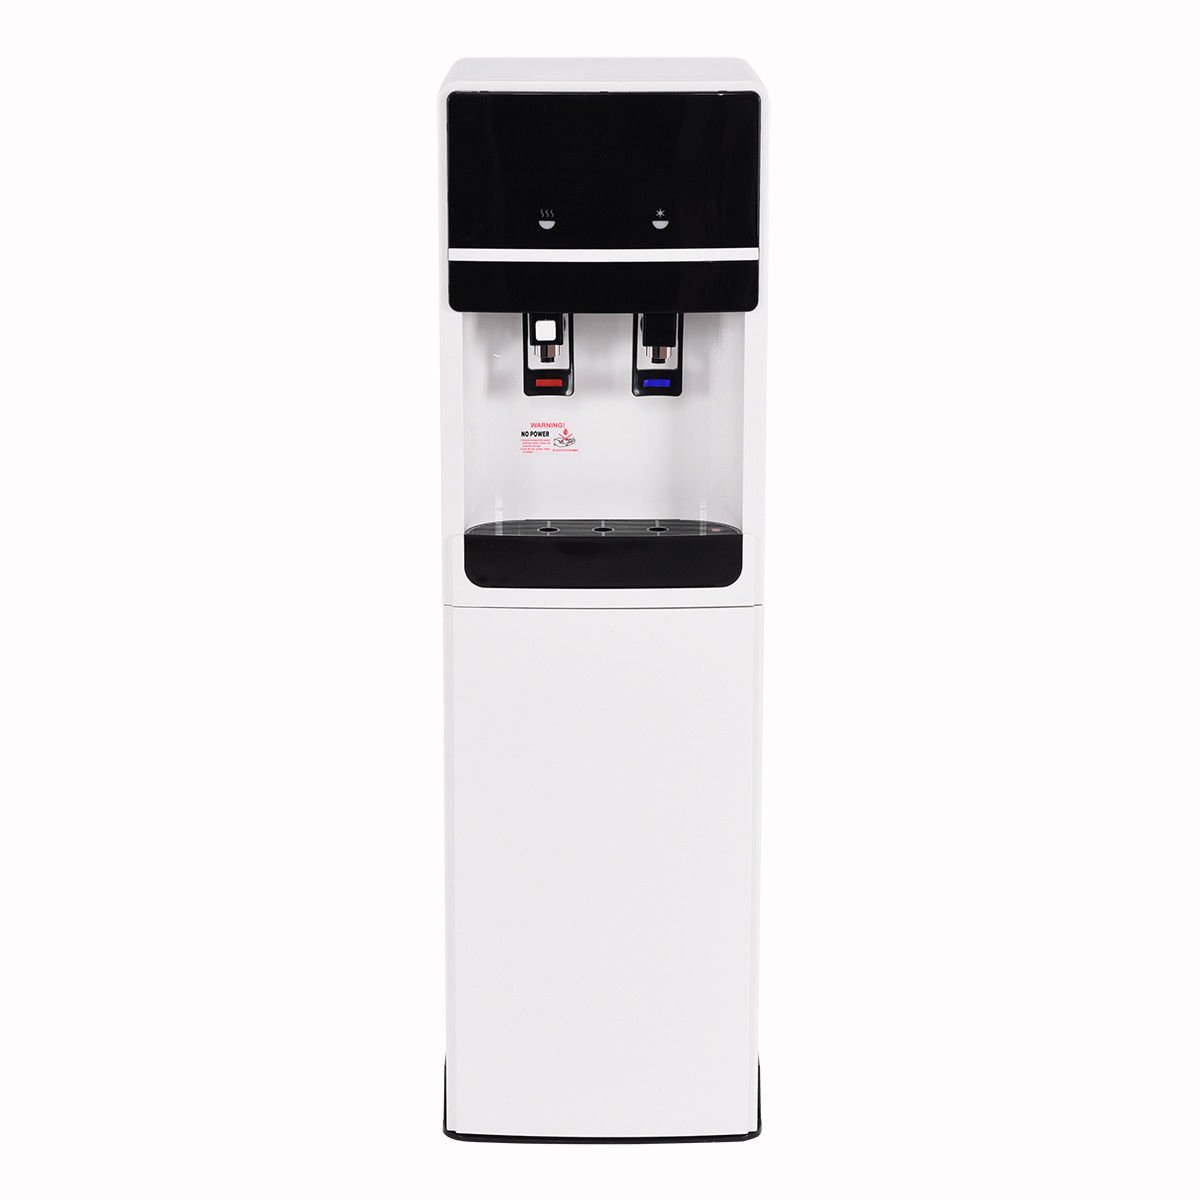 Costway Bottom Loading Water Cooler Dispenser Underlying Stainless Steel Water Cooler Dispenser Cold Hot 5 Gallon Home Office by COSTWAY (Image #3)